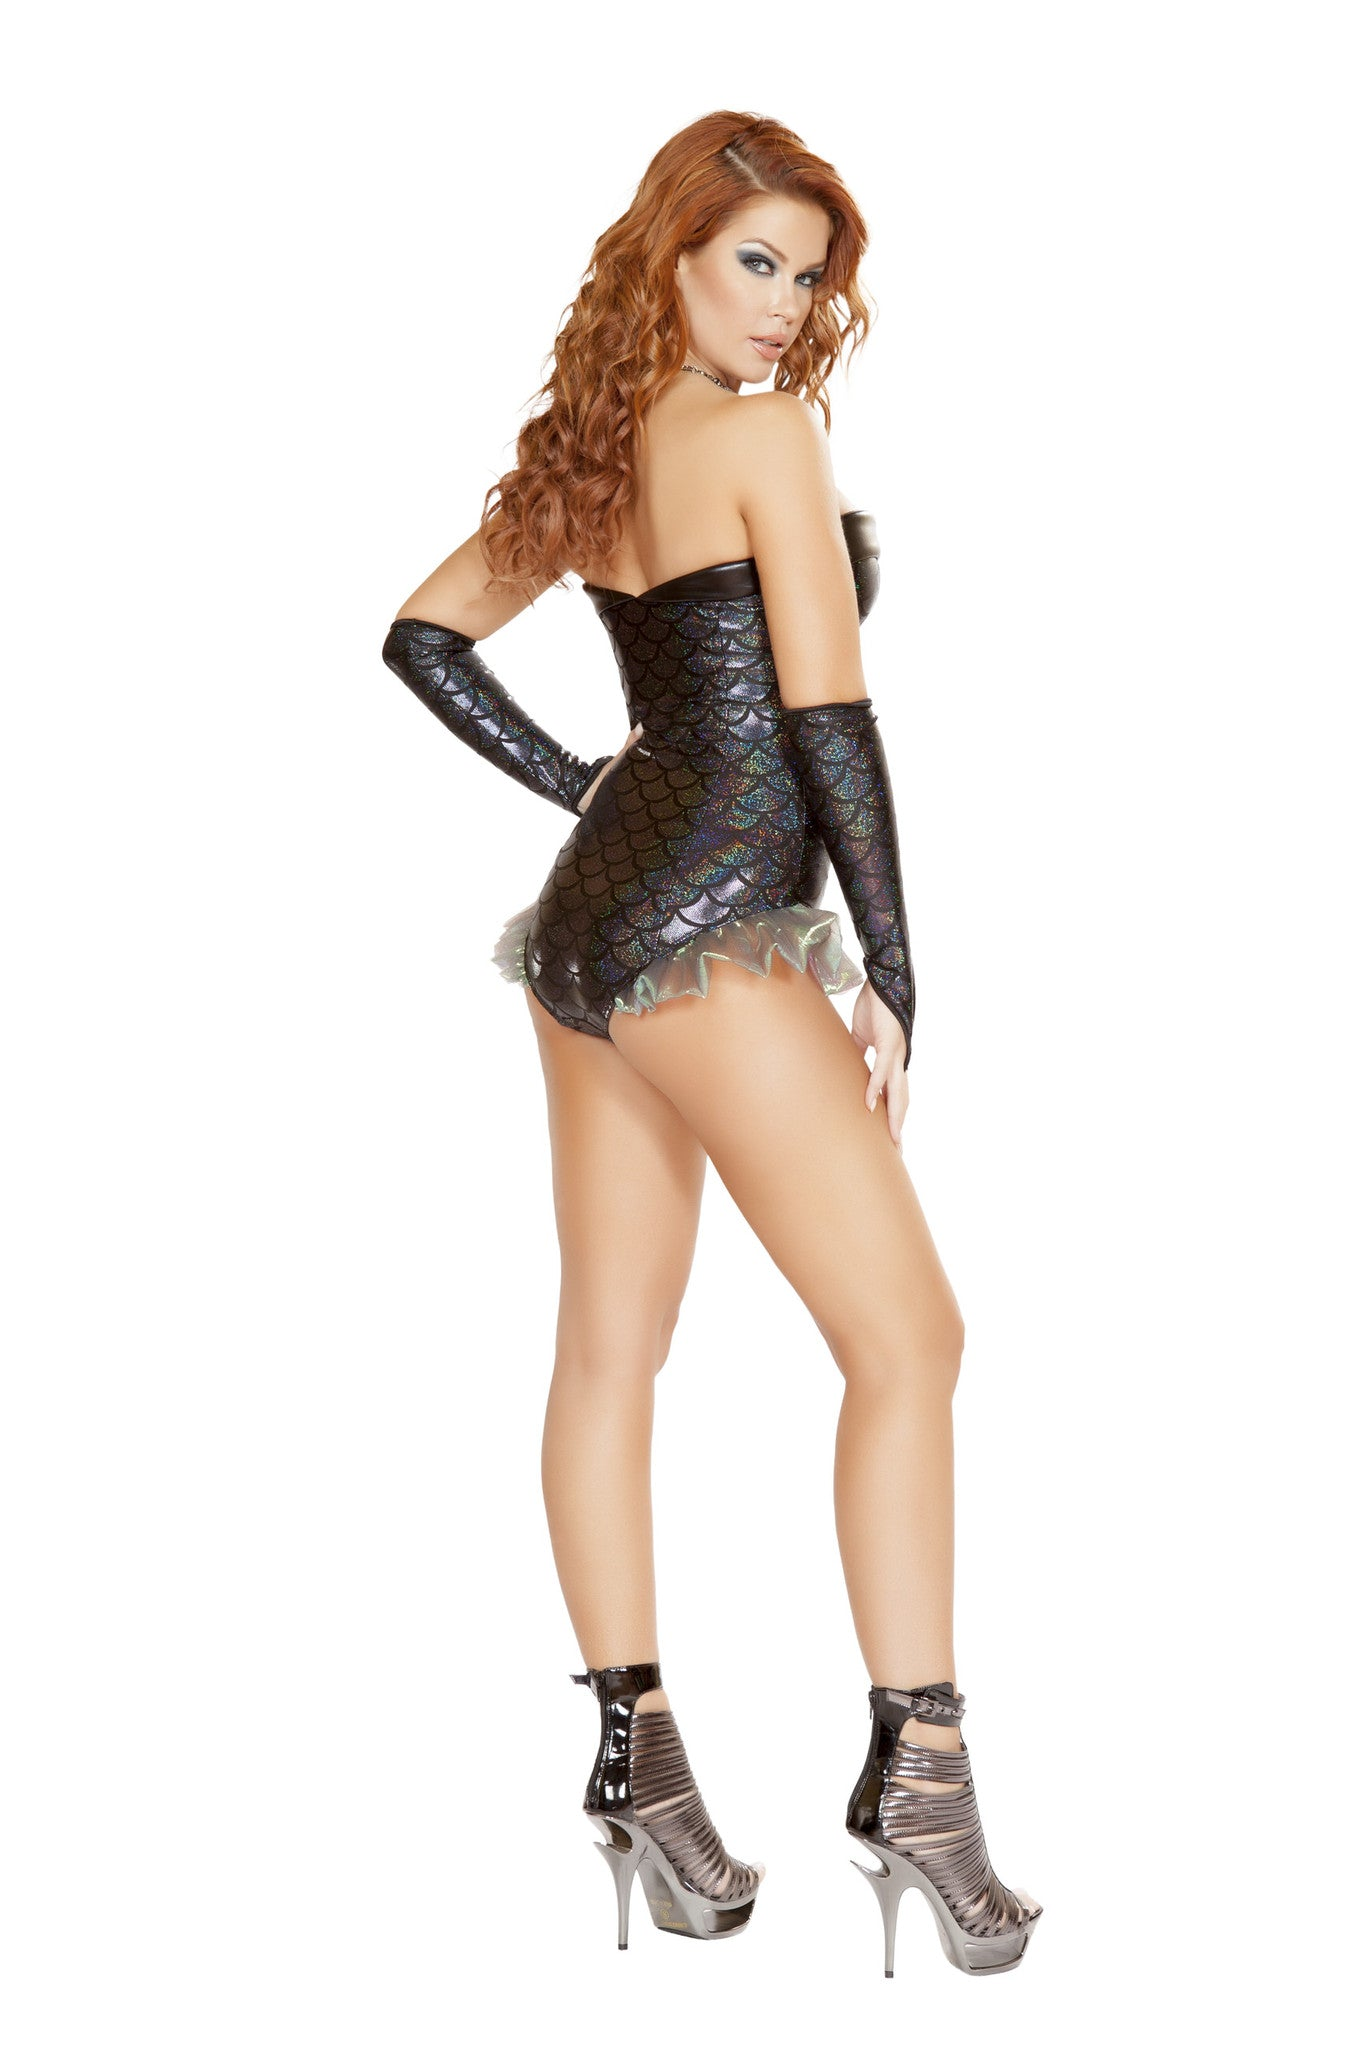 1pc Dark Mermaid ${description} | Roma Costume and Roma Confidential wholesale manufacturer of Women Apparel bulk world wide wholesale and world wide drop ship services for Adult Halloween Costumes, Sexy and Elegant Lingerie, Rave Clothing, Club wear, and Christmas Costumes. Costumes, Roma Costume, Inc., Roma Costume, Roma Confidential, Wholesale clothing, drop ship, drop ship service, Wholesale Lingerie, Wholesale Adult Halloween Costumes, Rave Clothing, EDM Clothing, Festival Wear, Christmas Costumes, Clubwear, Club wear.